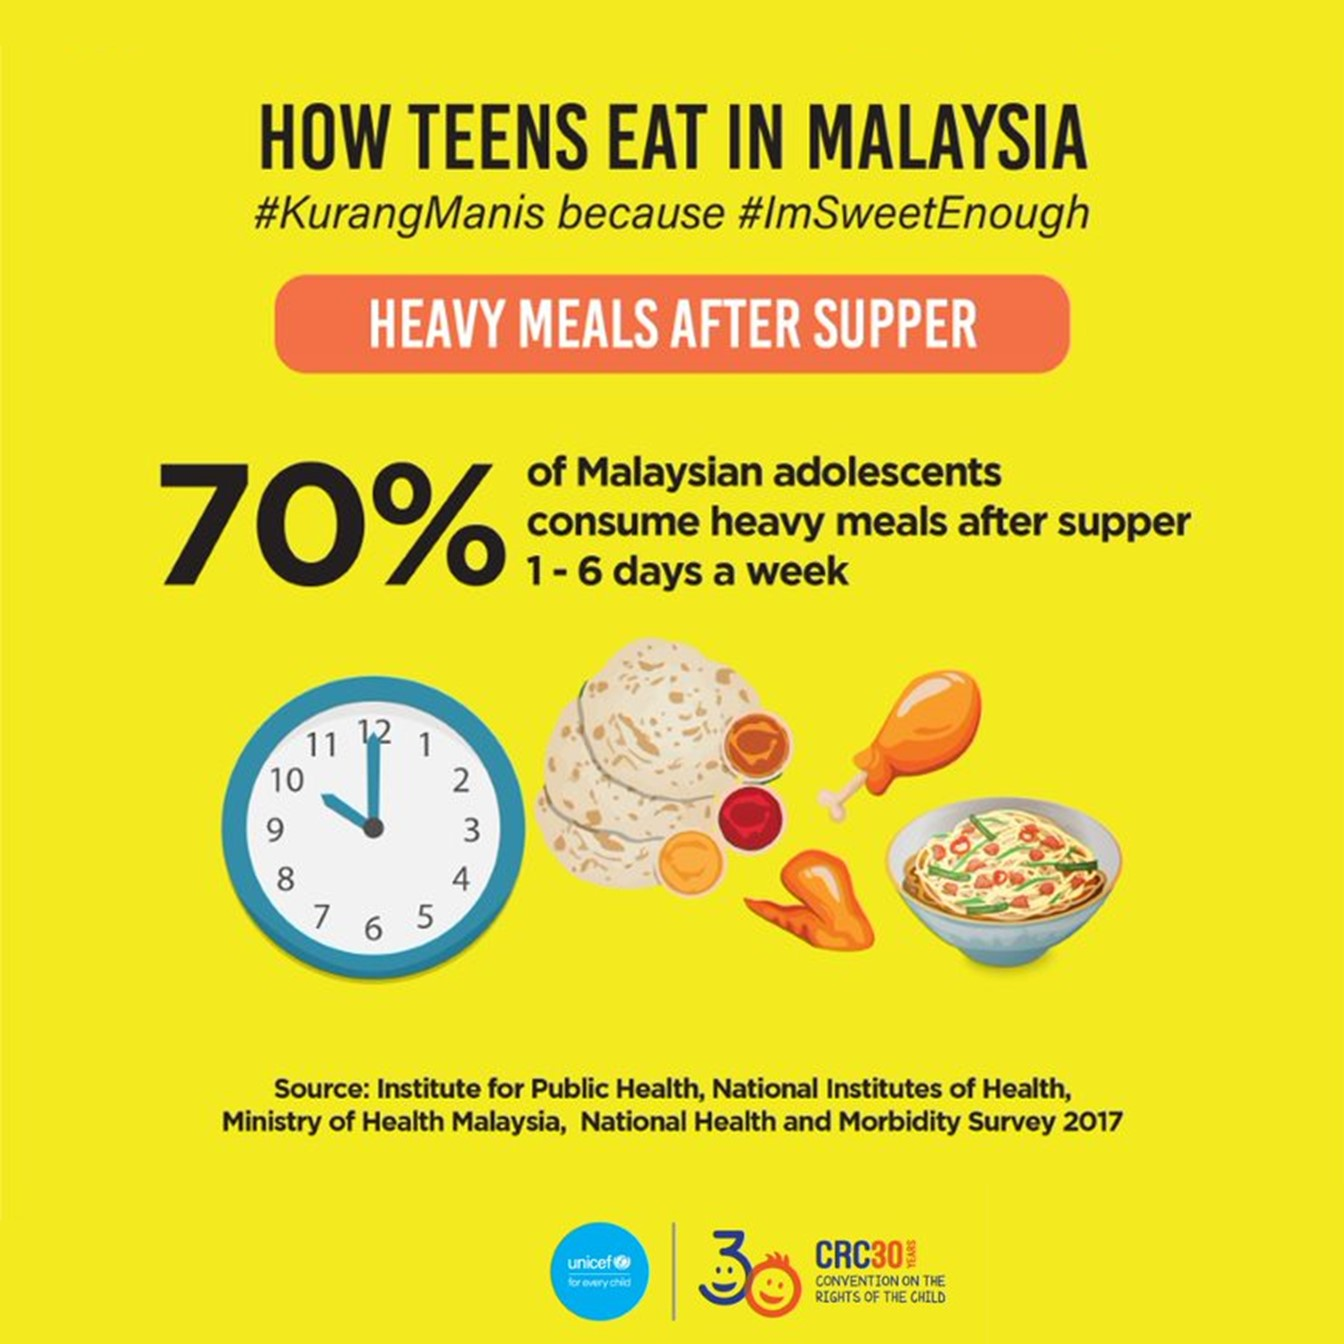 How teens eat in Malaysia. 70% of Malaysian adolescents consume heavy meals after supper.